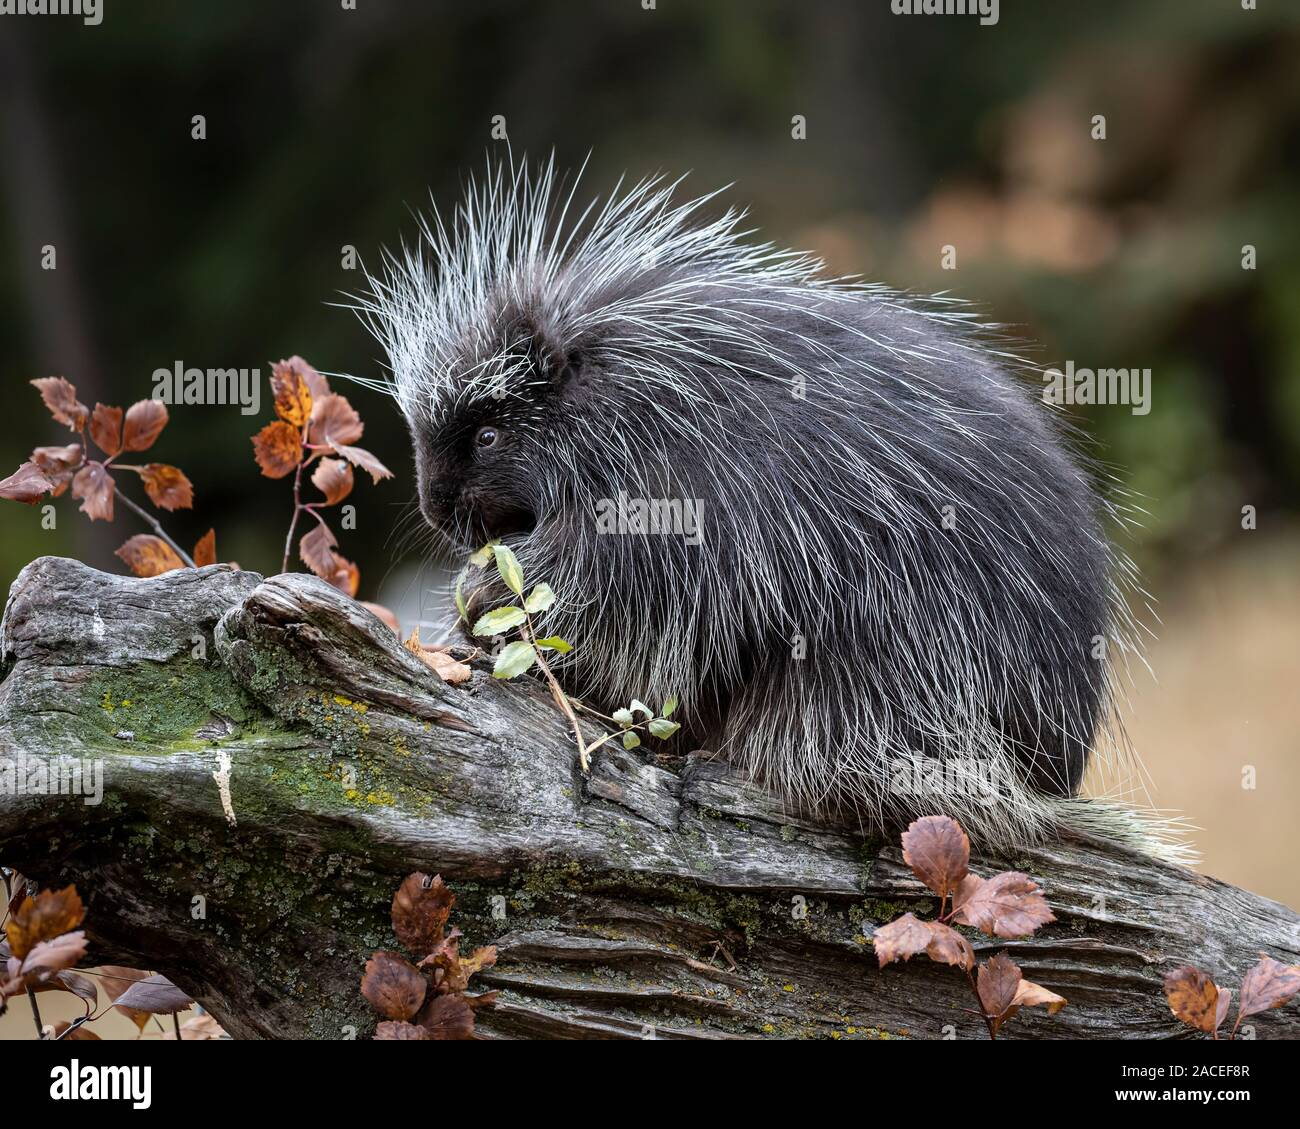 Porcupine playing and posing in Autumn leaves Stock Photo